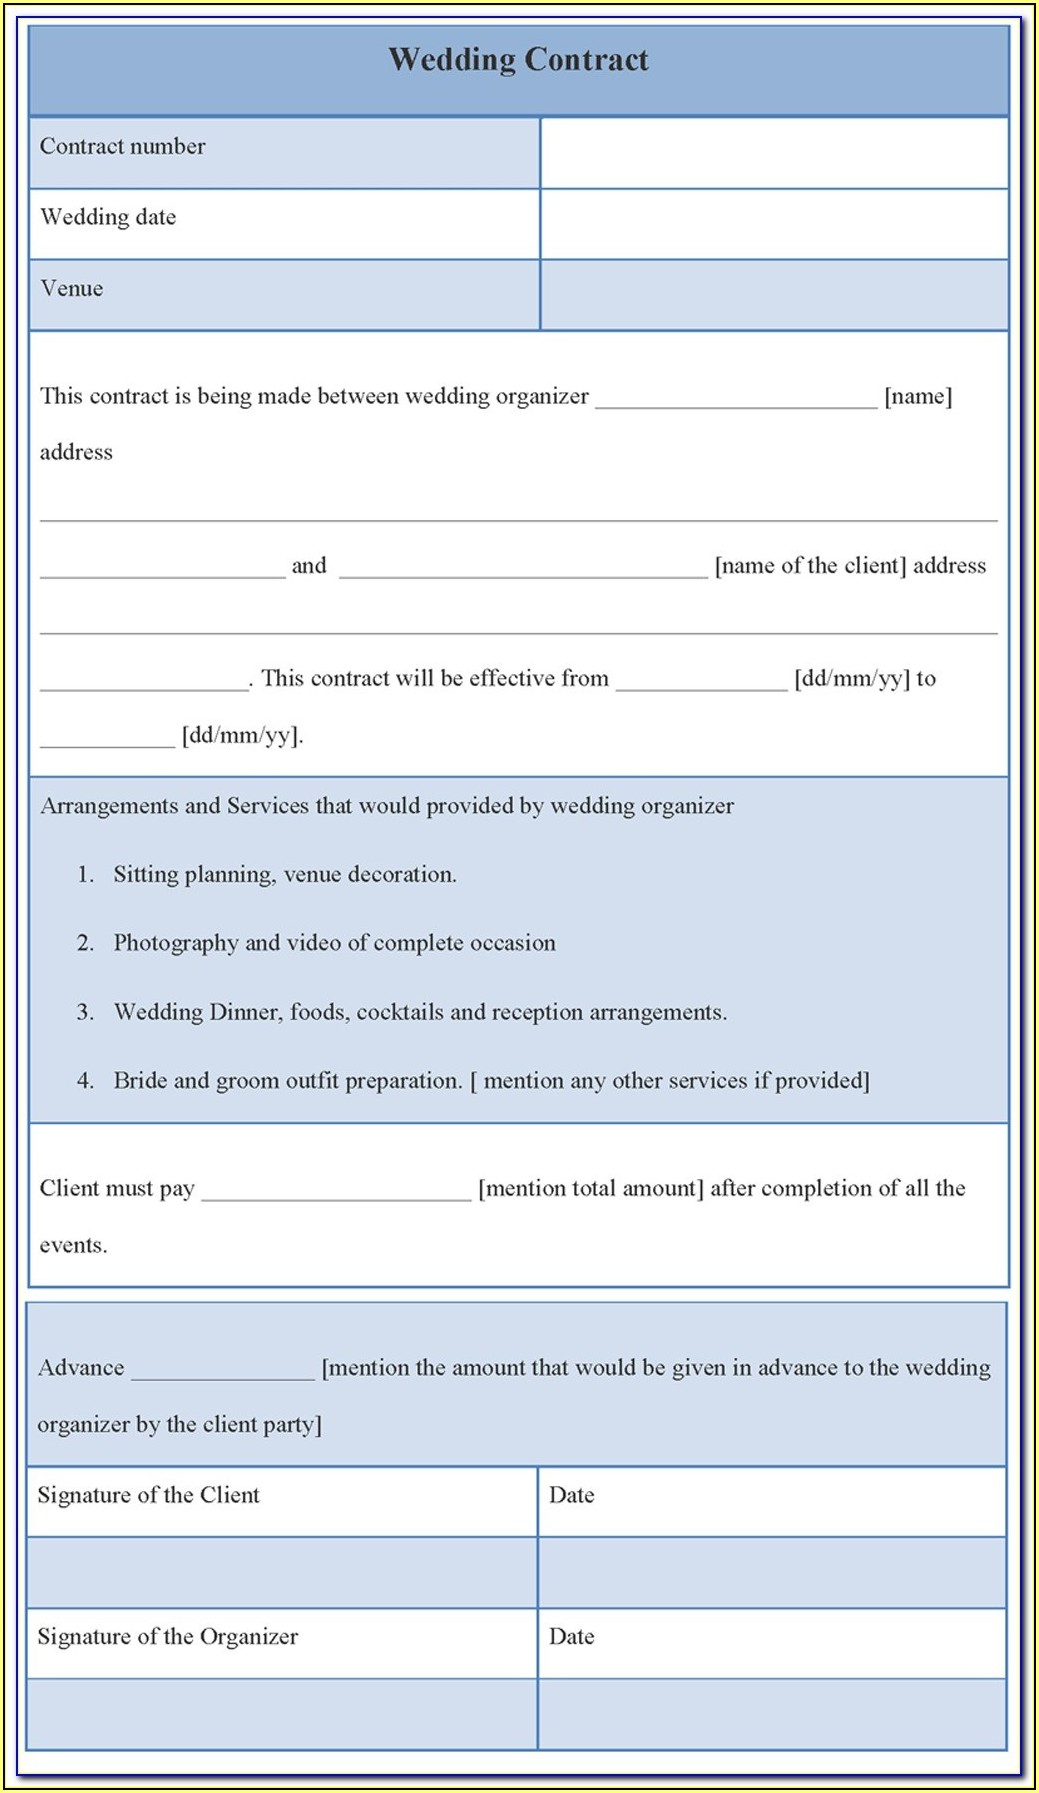 Vendor Chargeback Form Template